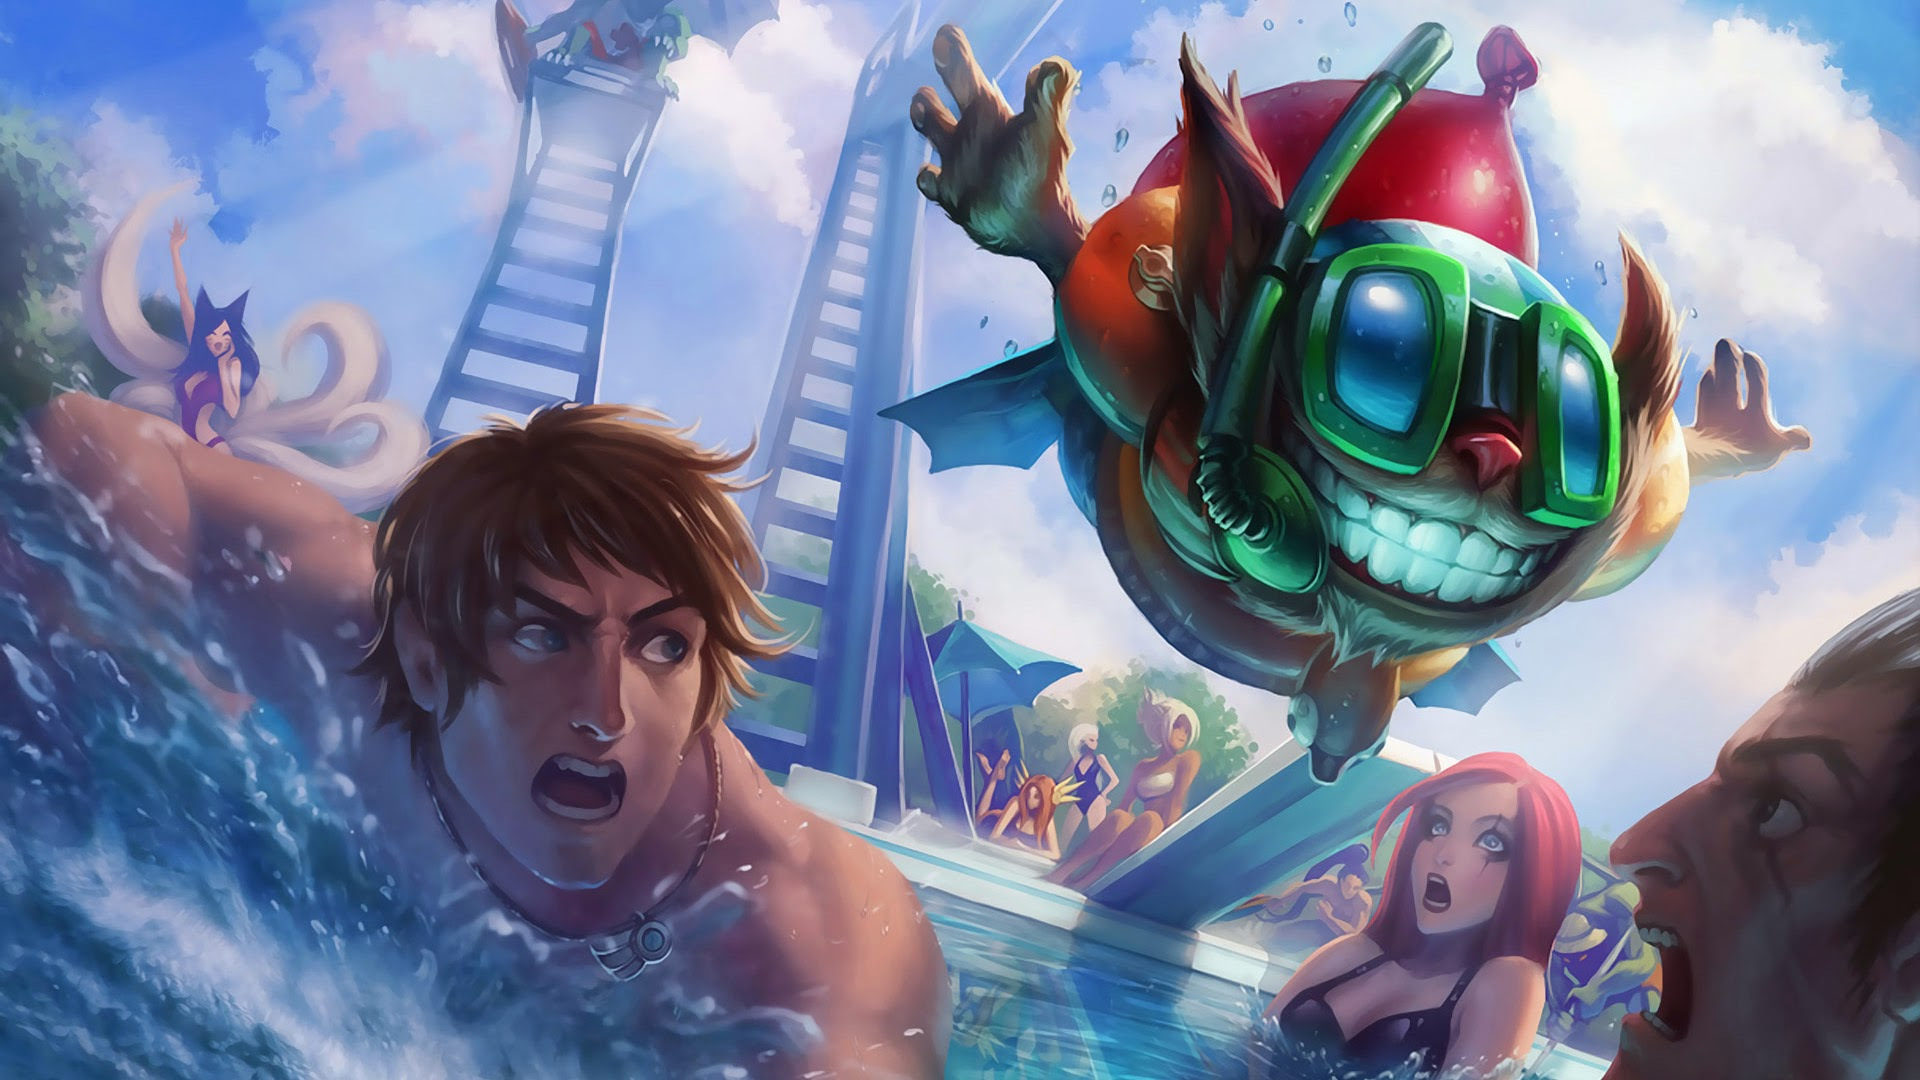 League of legends wallpaper pack - League Of Legends Pool Party Hd Wallpaper 1920x1080